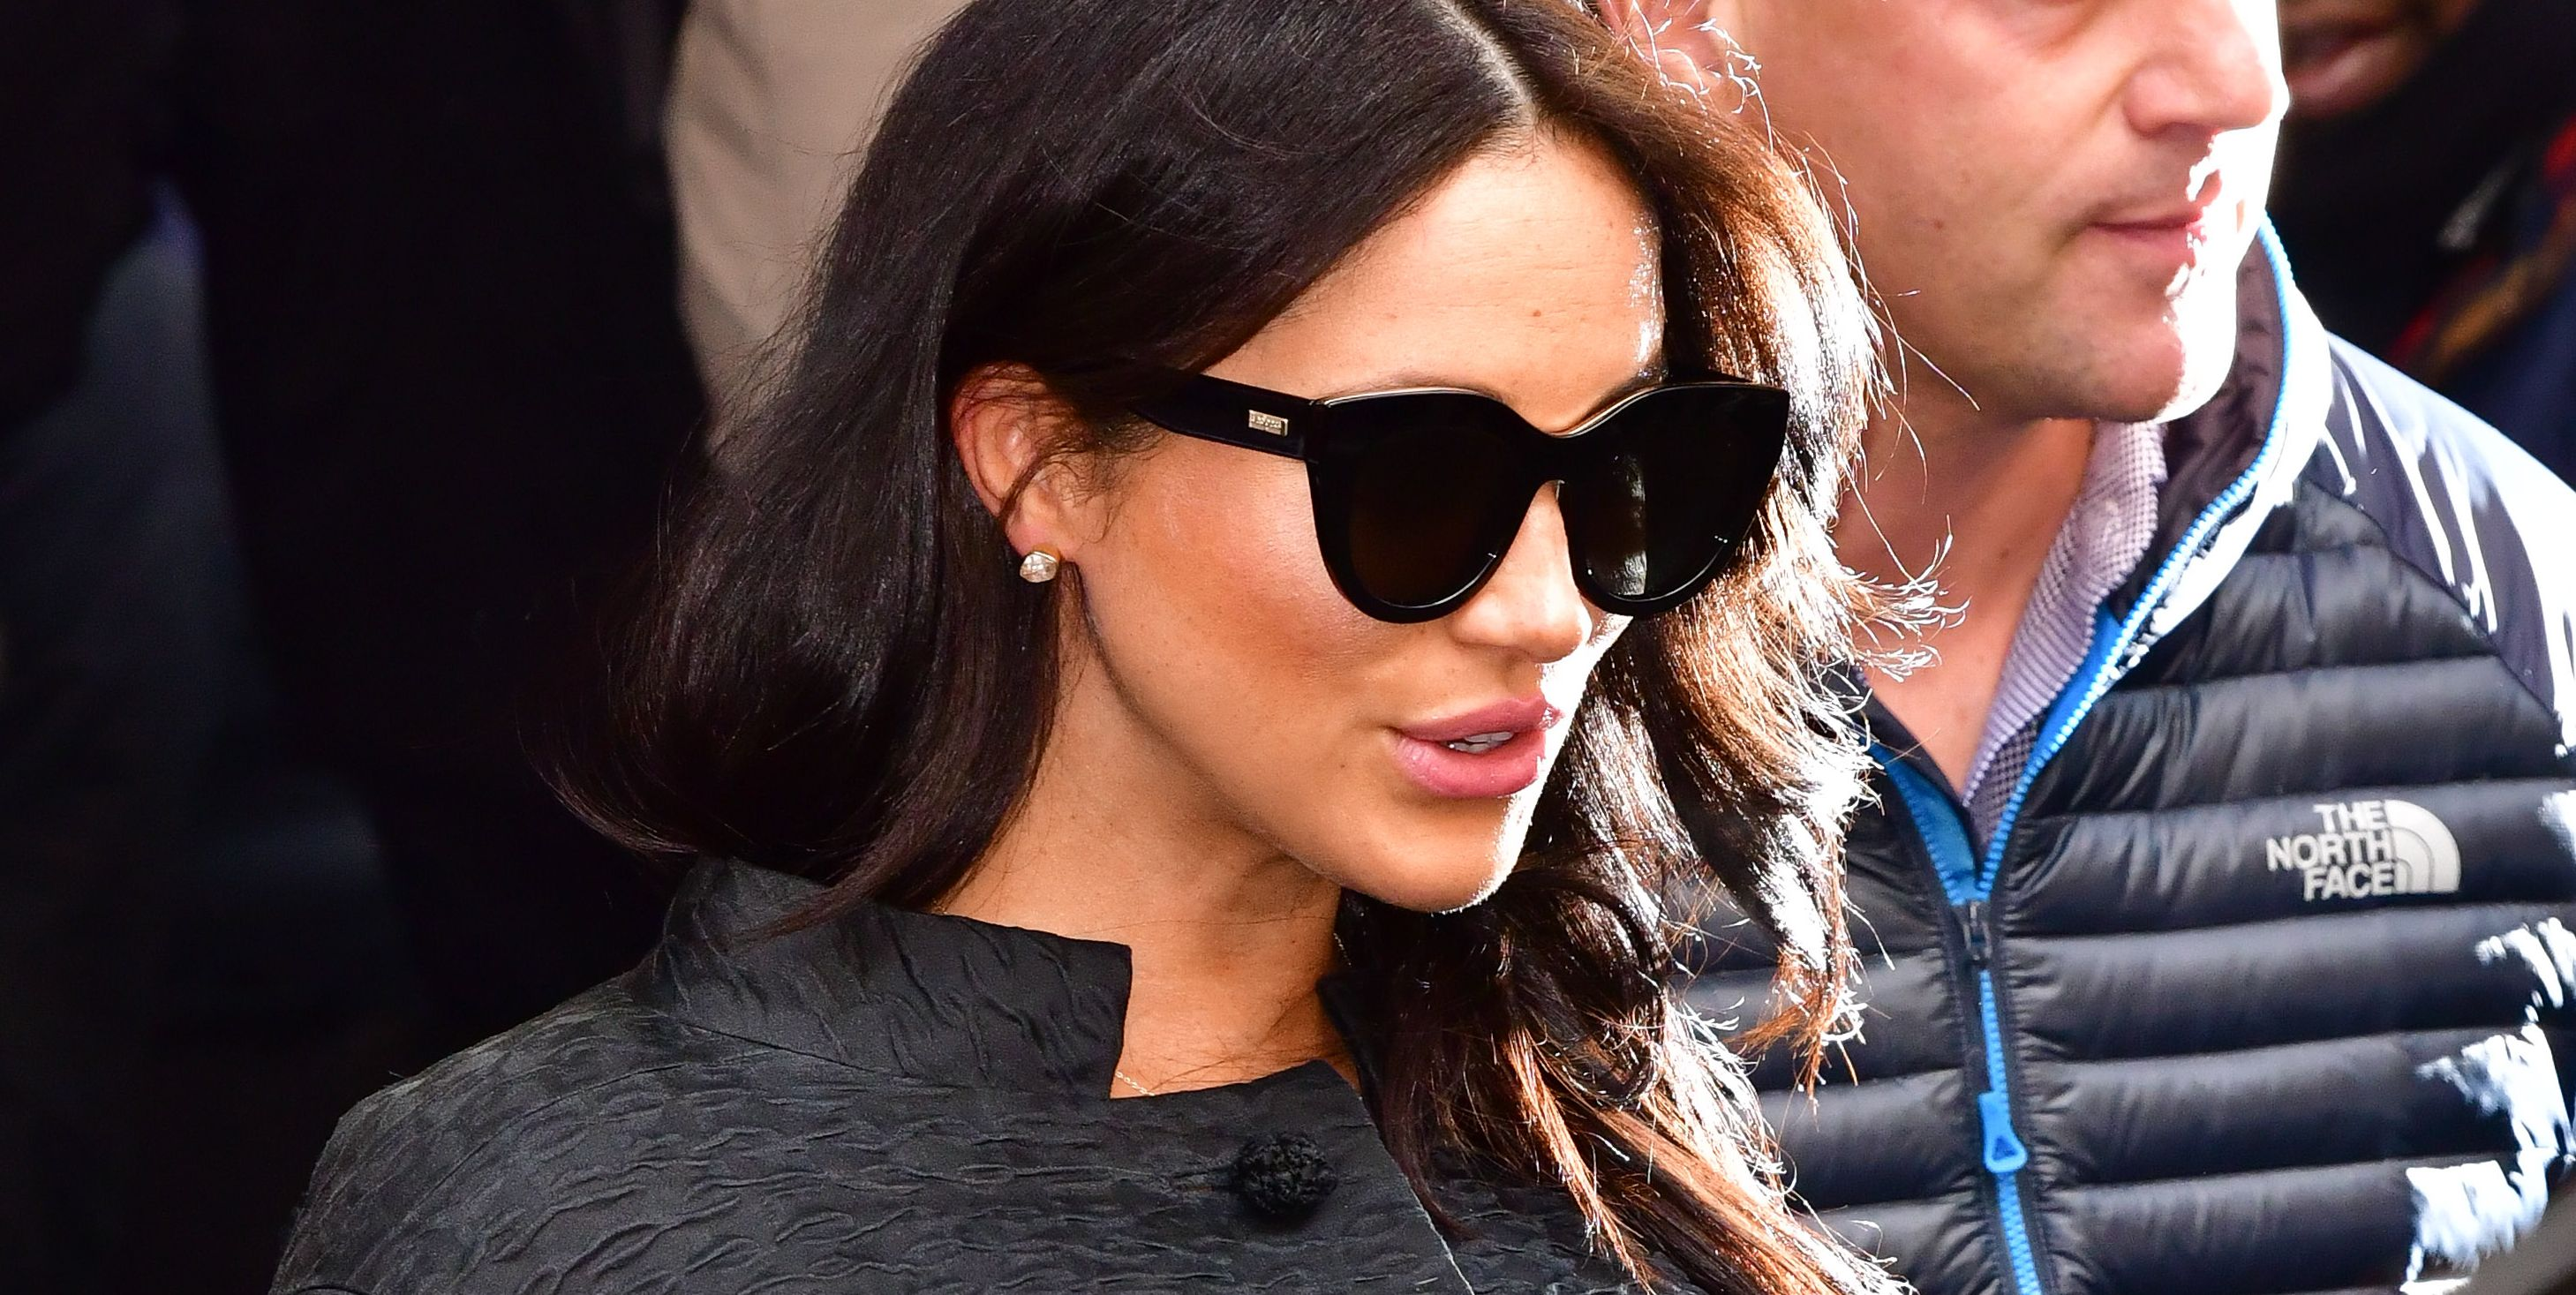 See All the Photos From Meghan Markle's Star-Studded Baby Shower